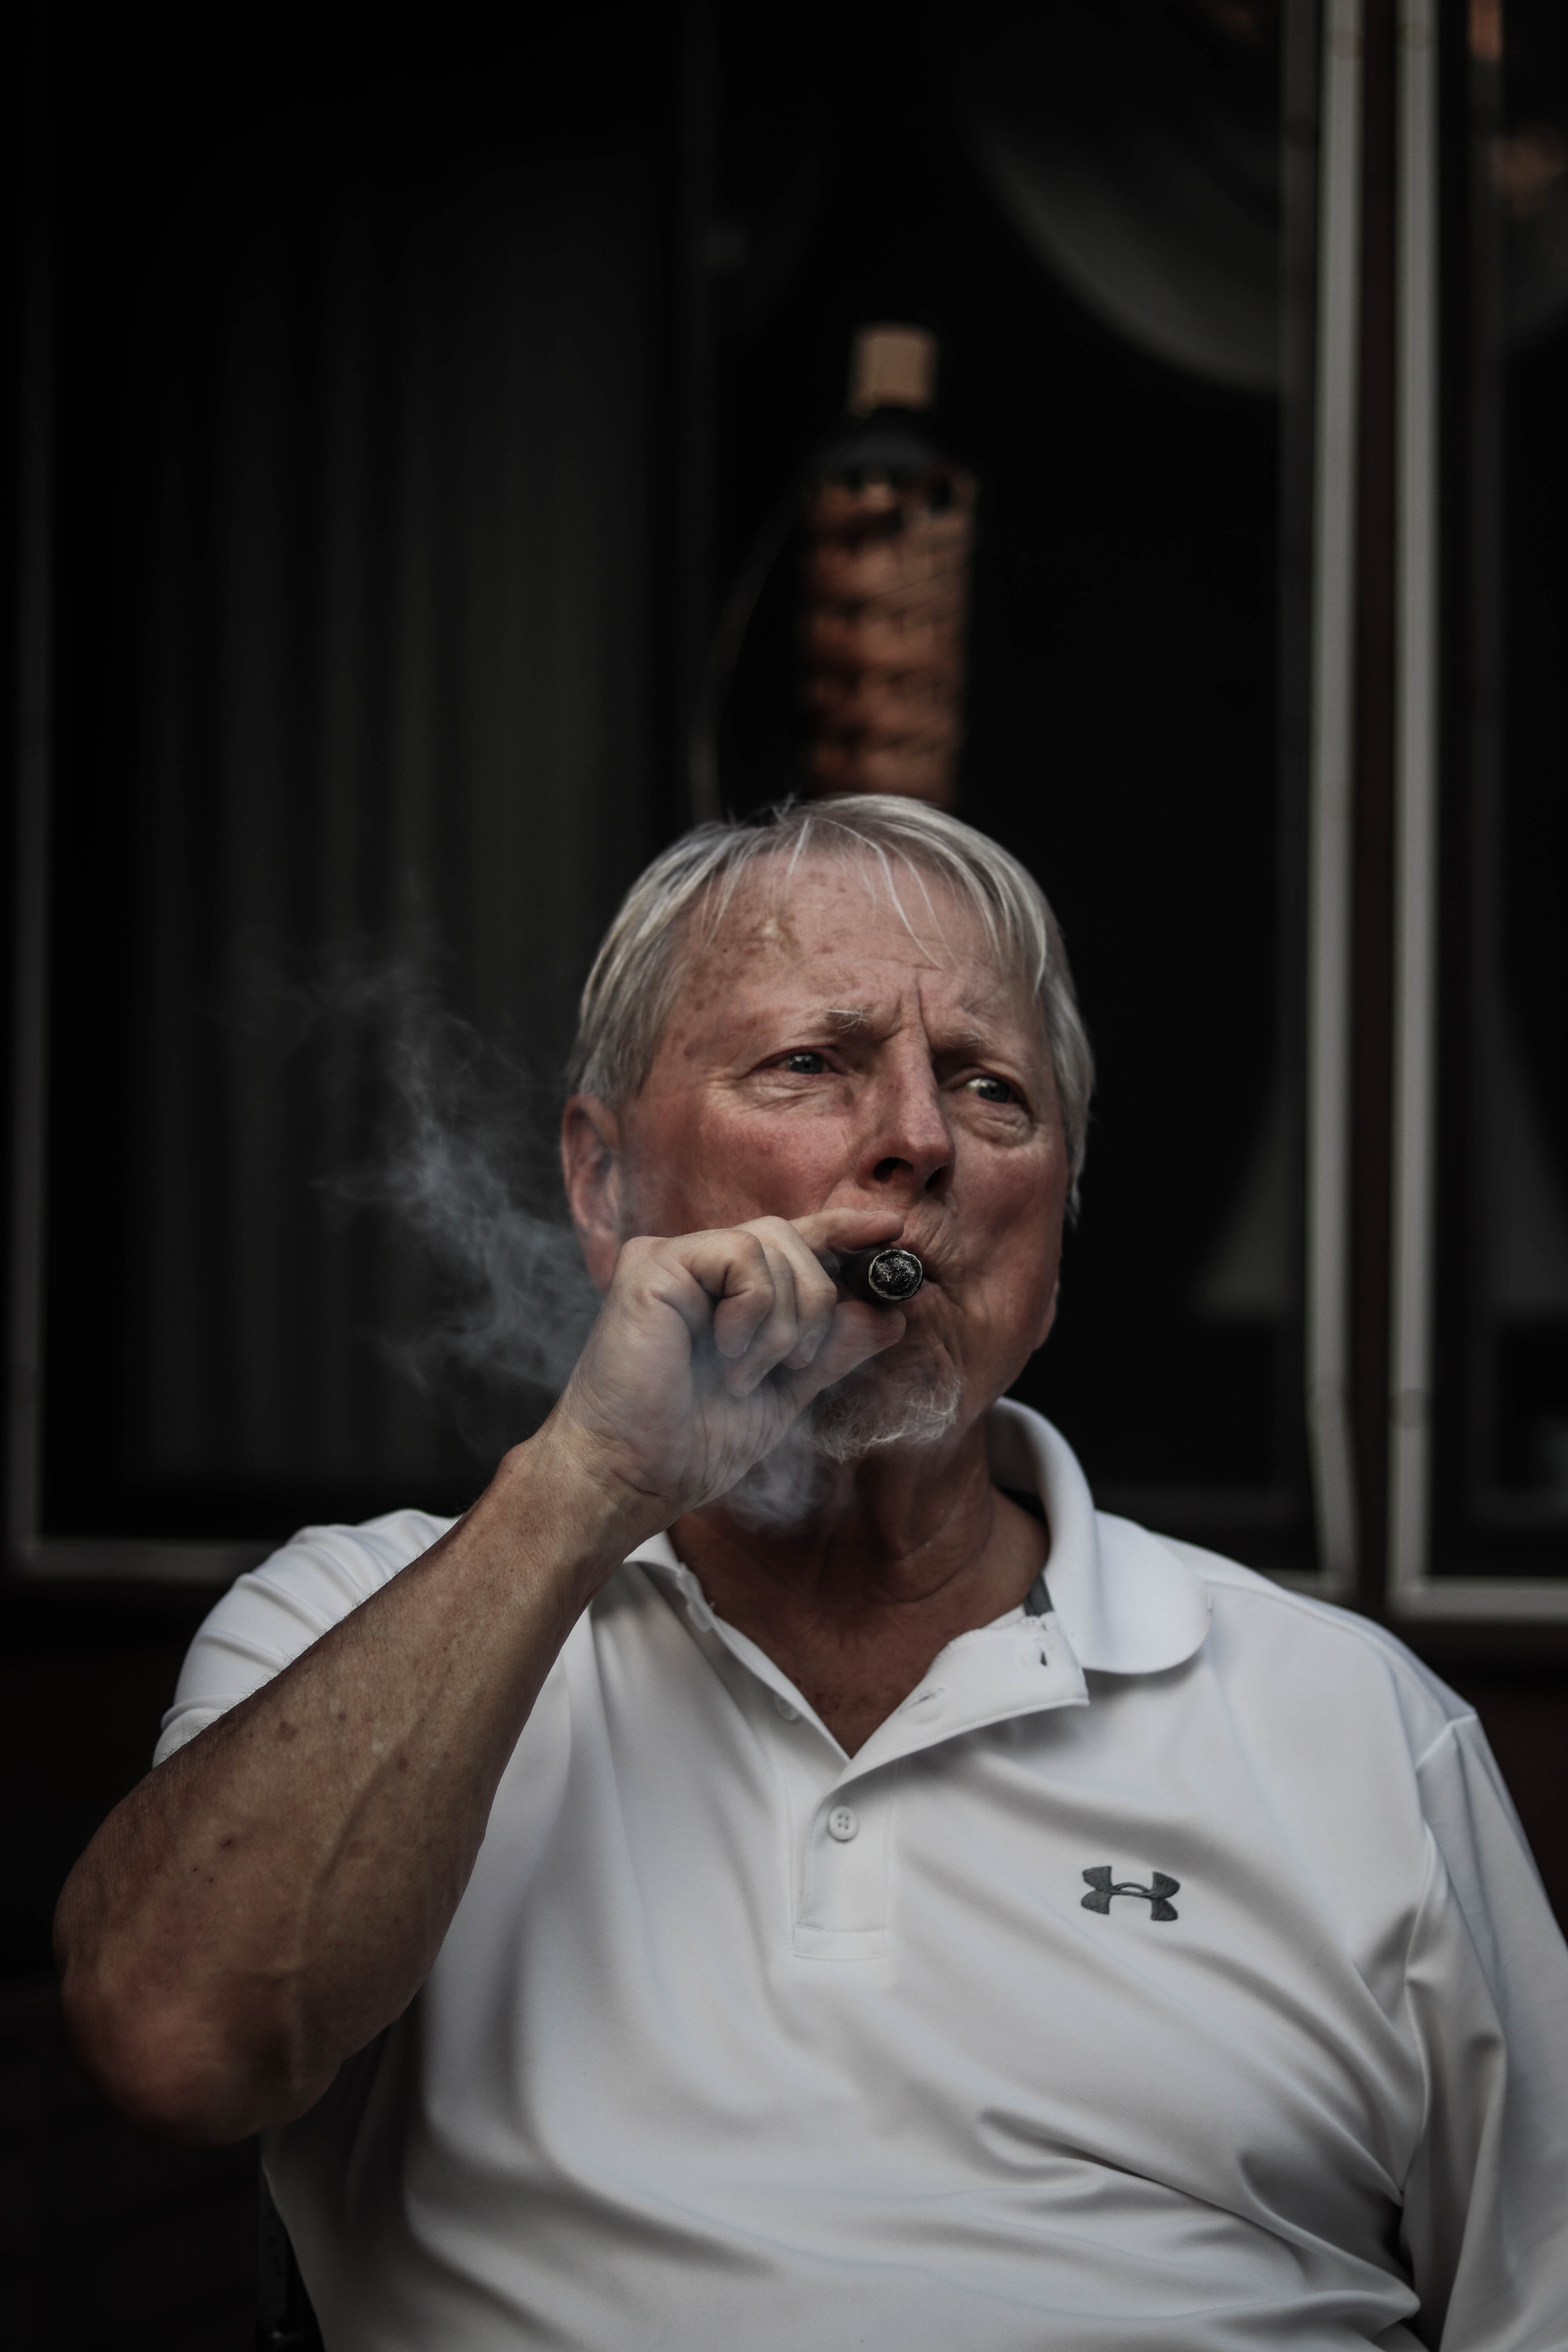 selective focus photography of man using tobacco